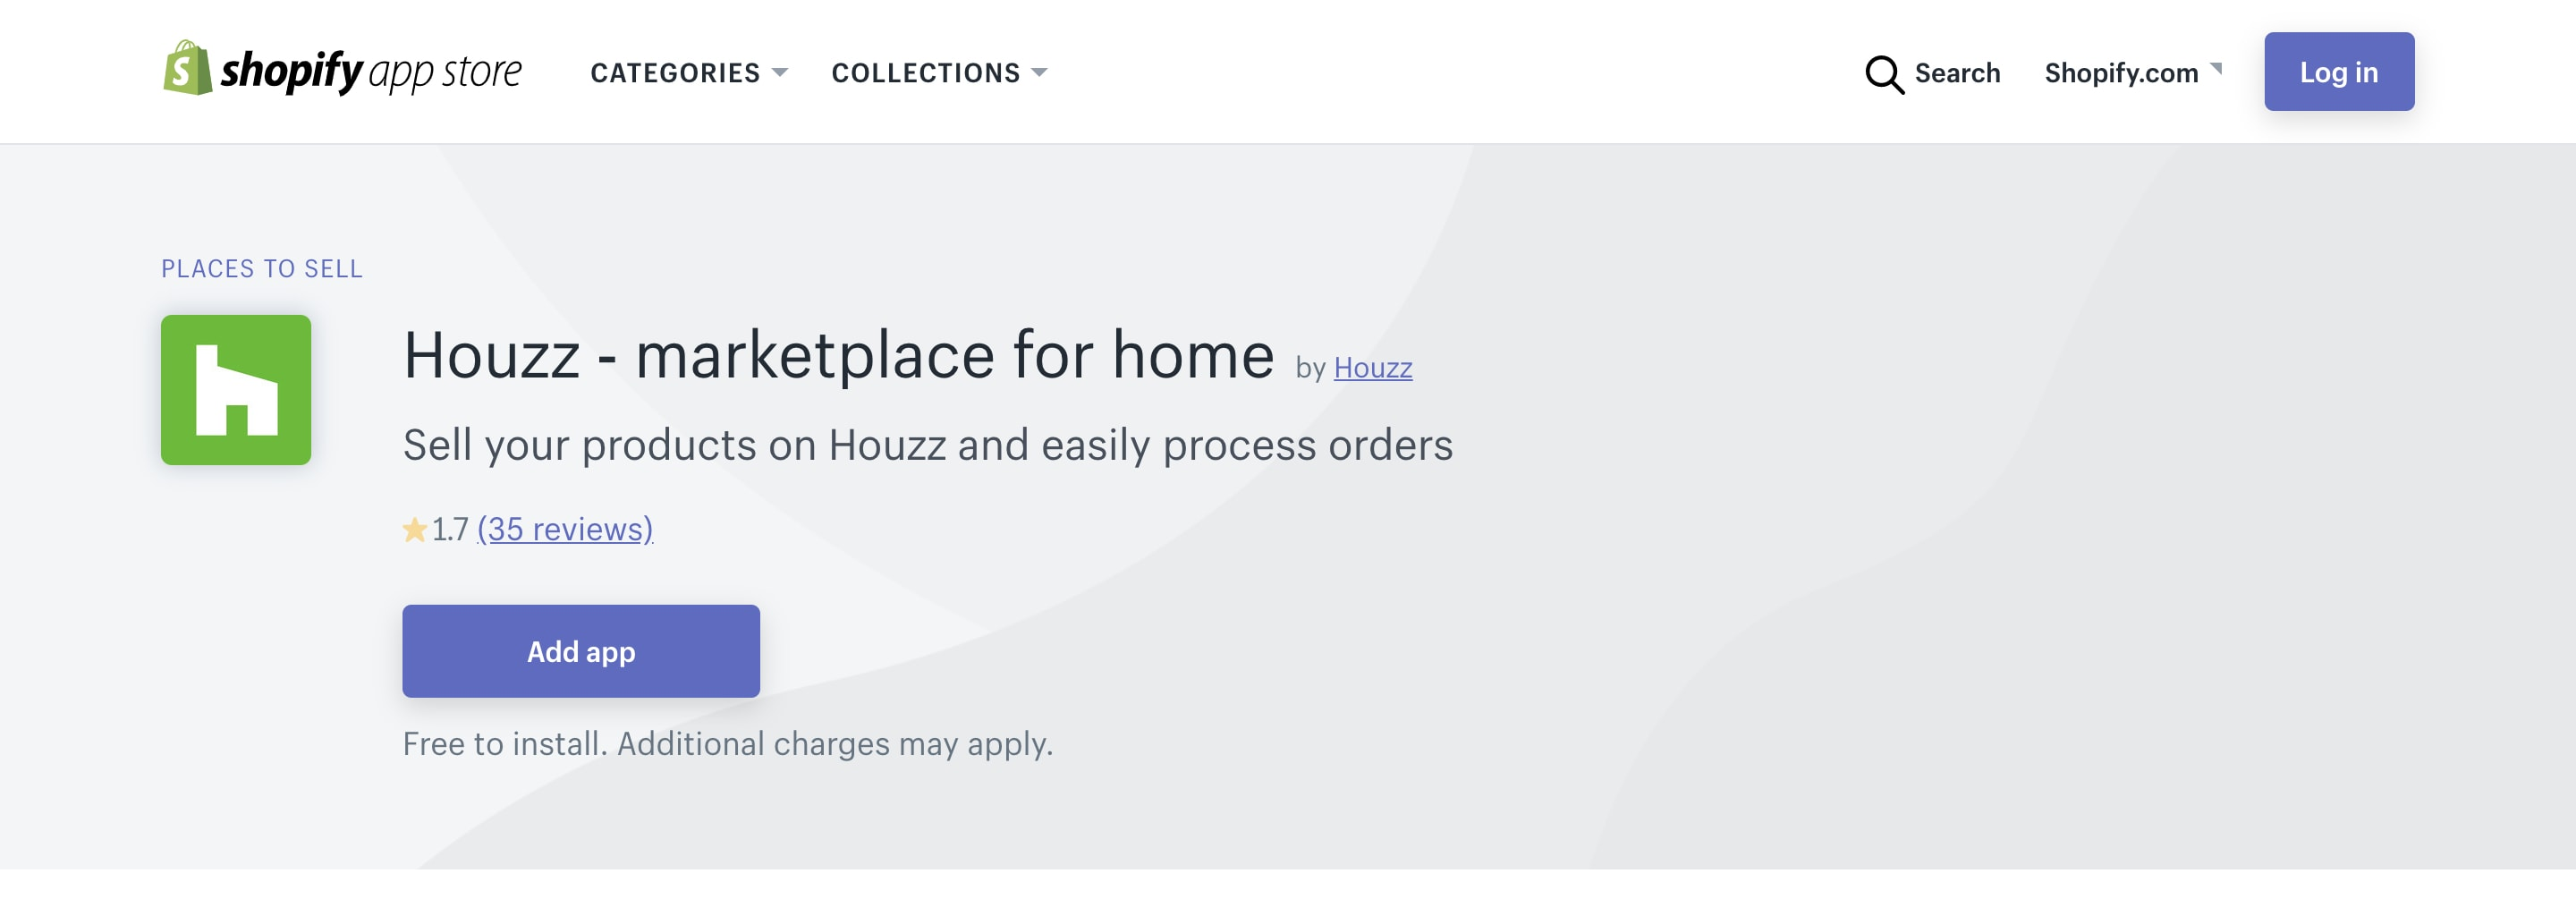 Shopify Houzz channel.